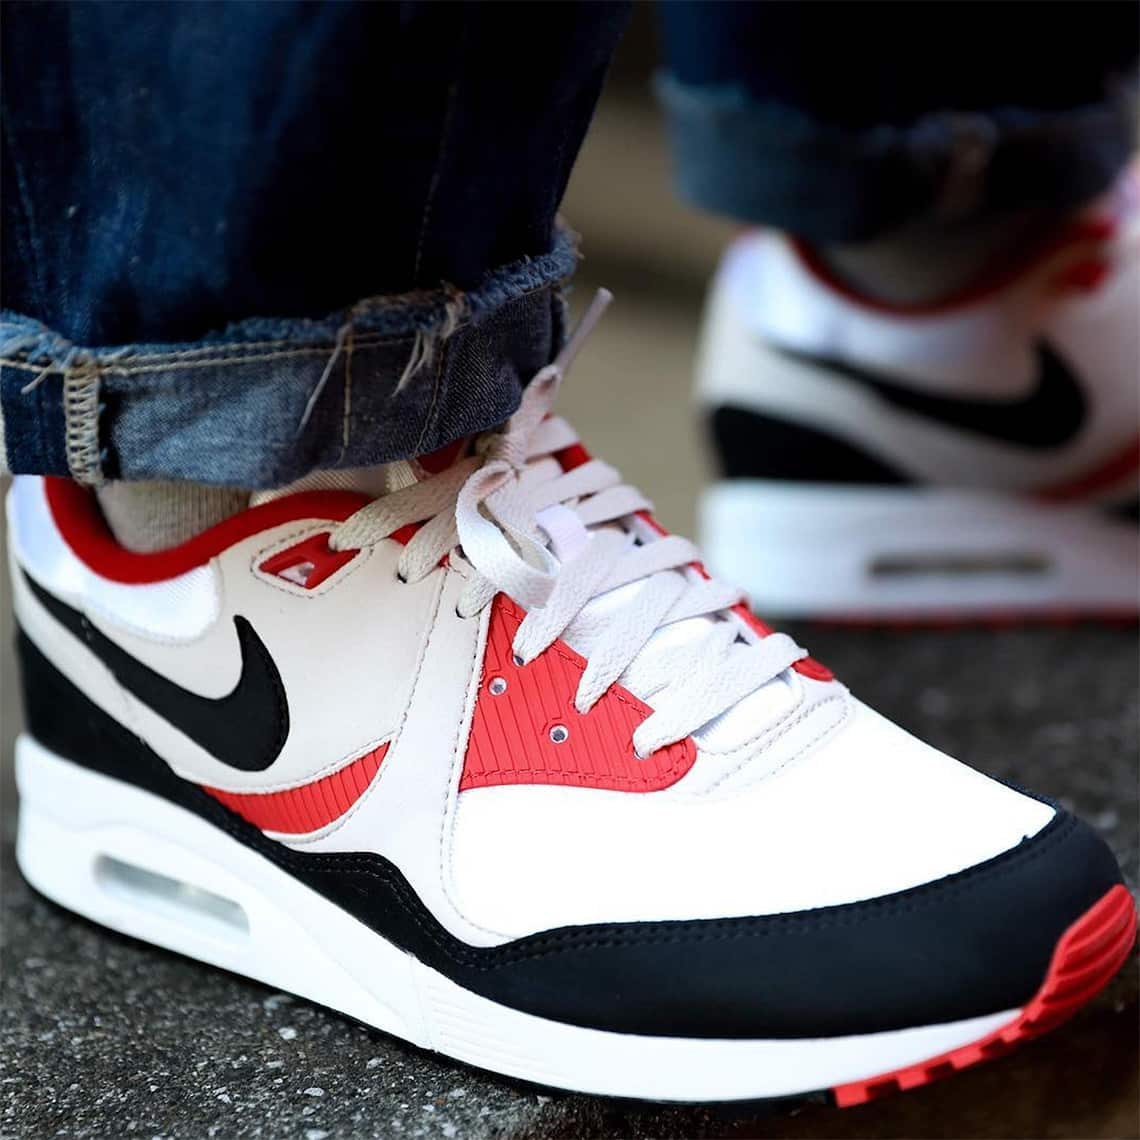 Nike air max light réedition image 3